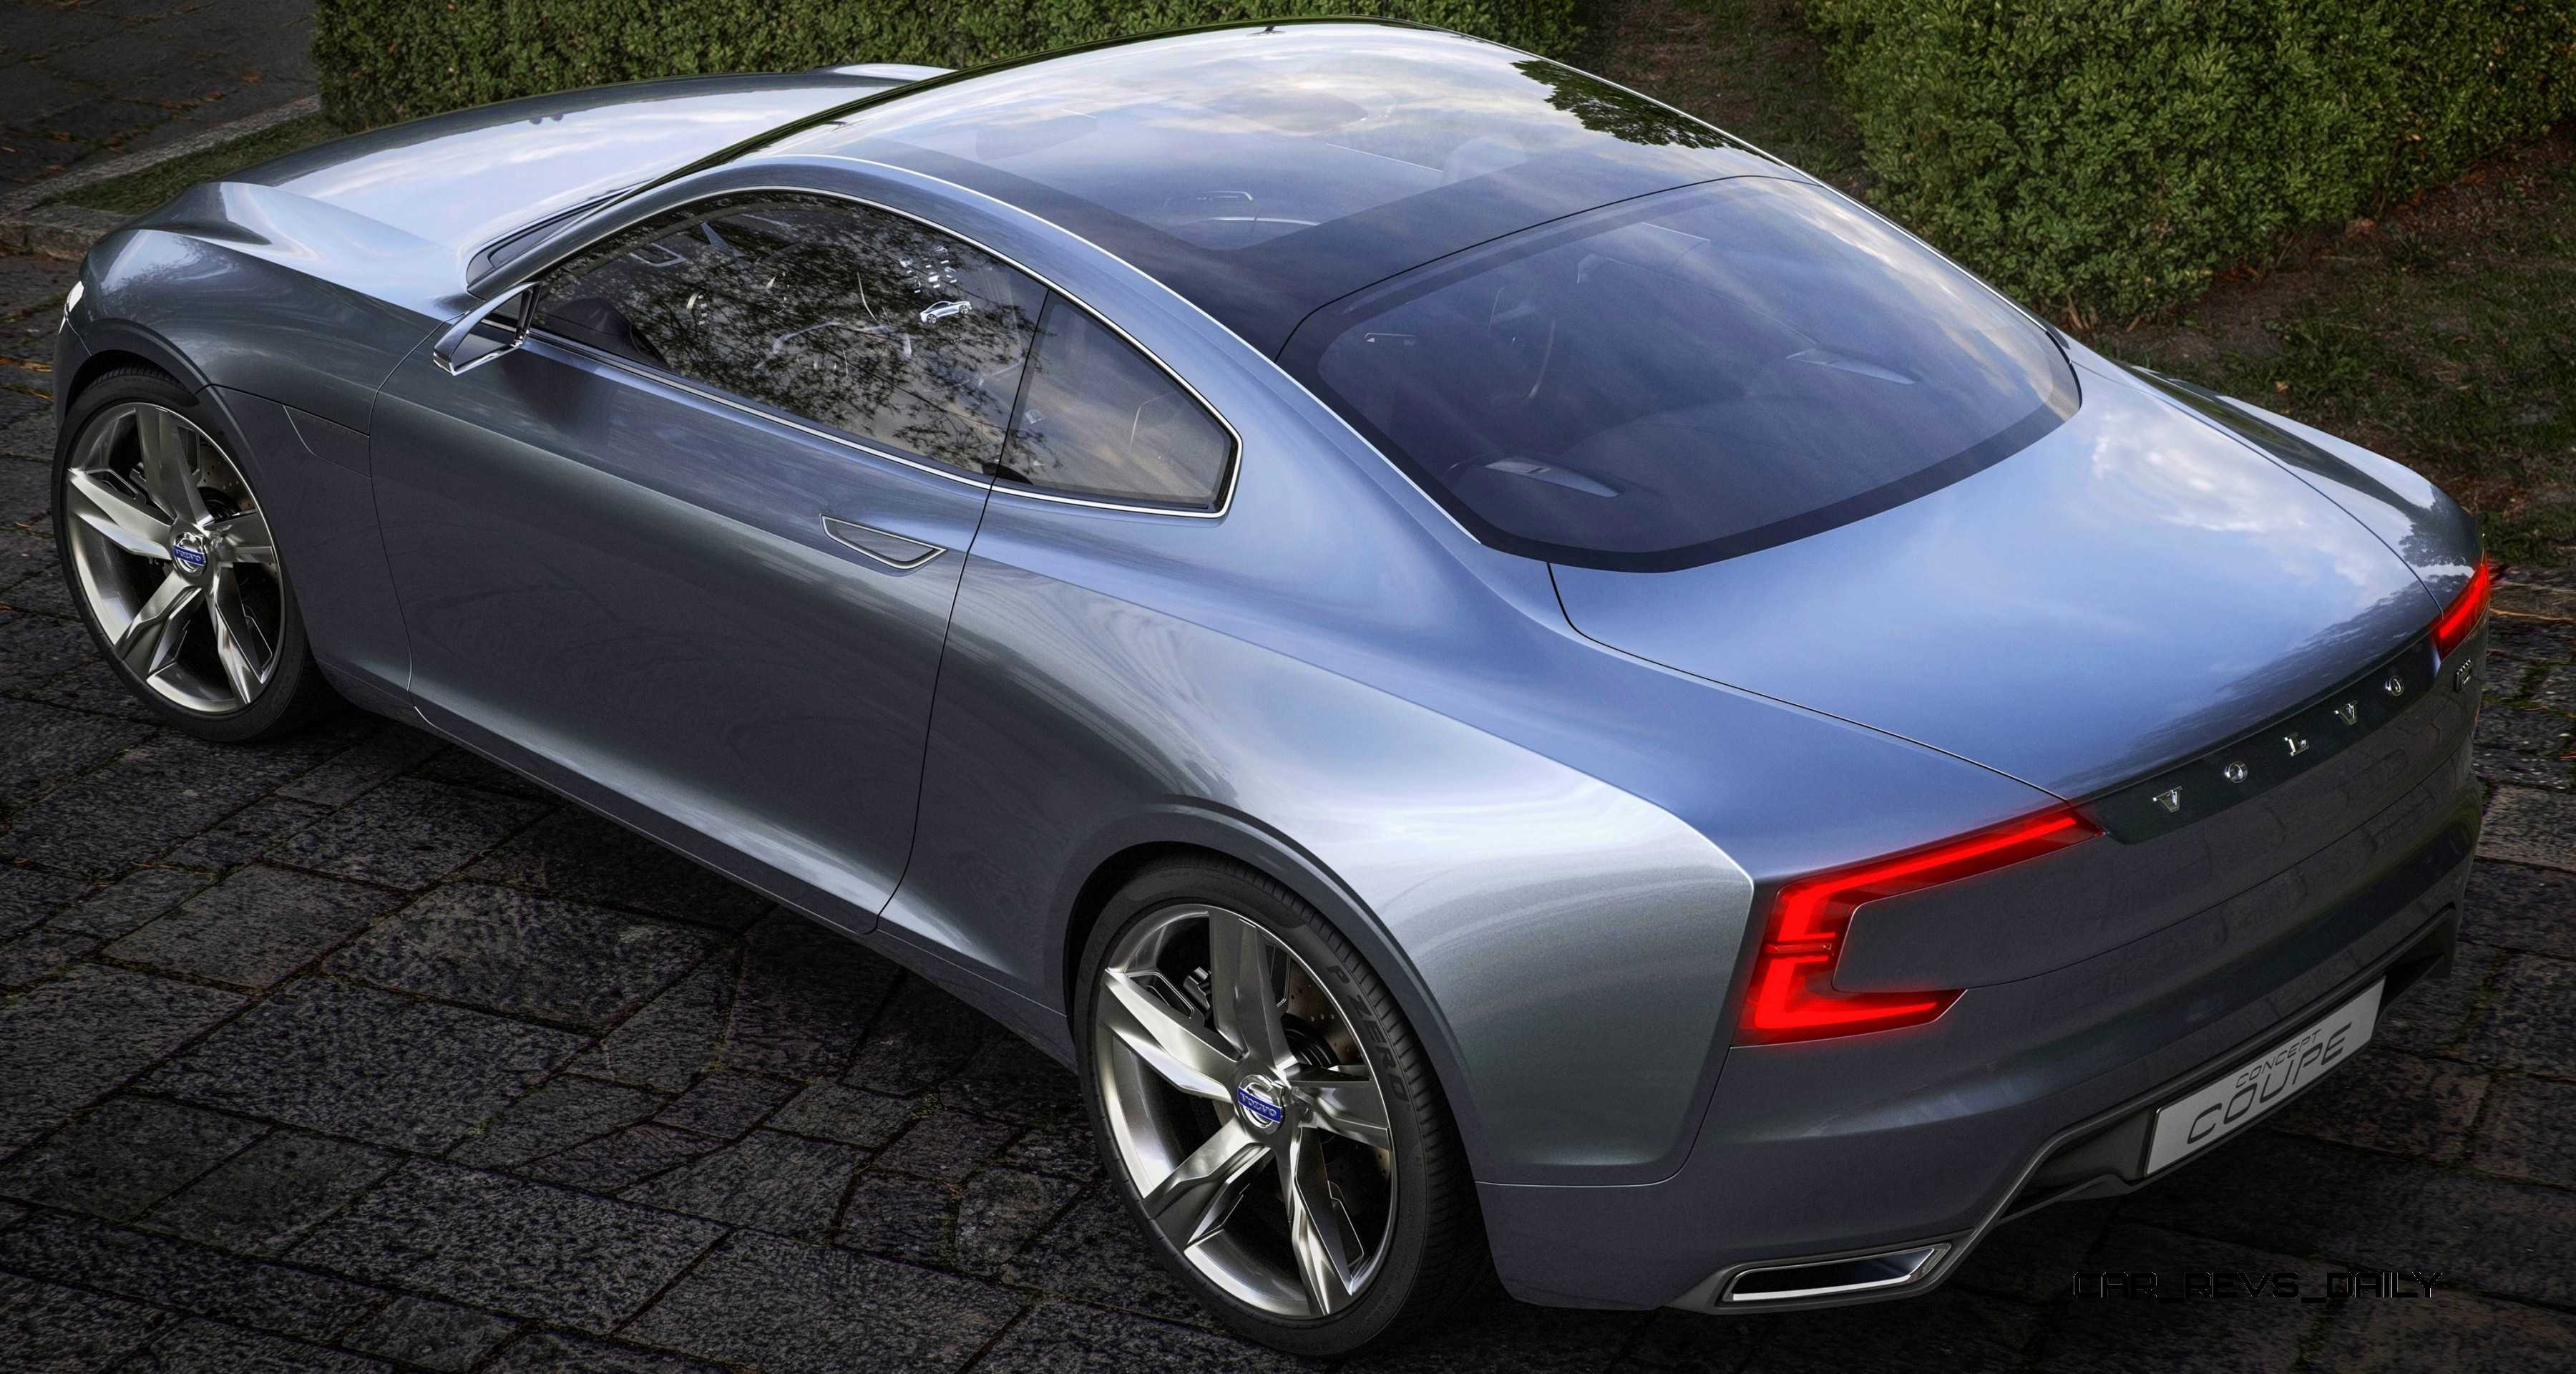 Most Improved Style and Design - Volvo Coupe25